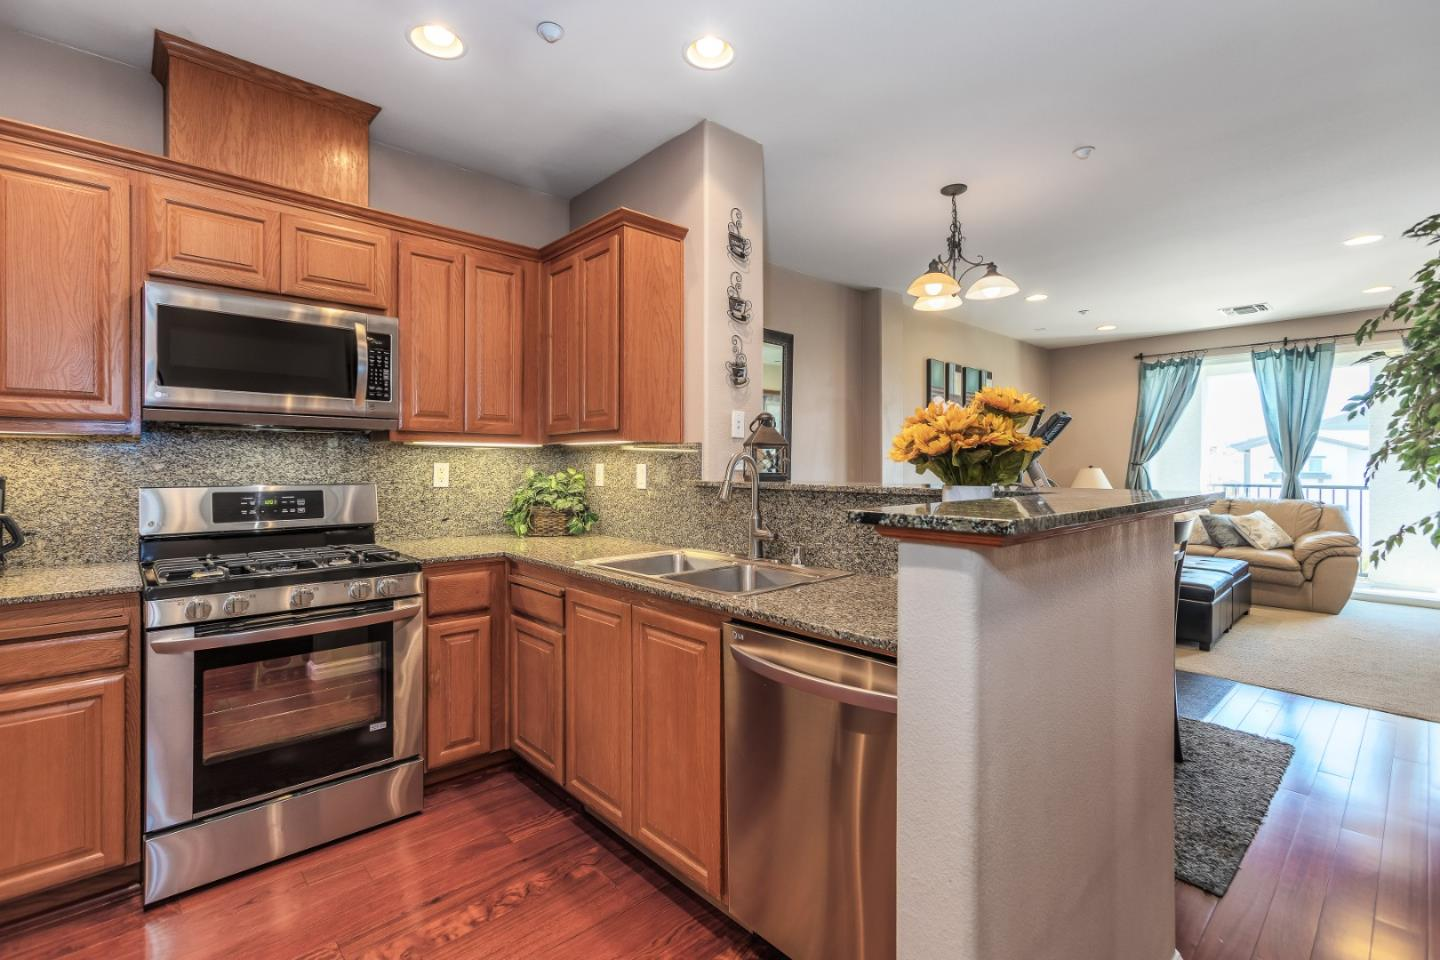 Image not available for 3240 Maguire Way, Dublin CA, 94568